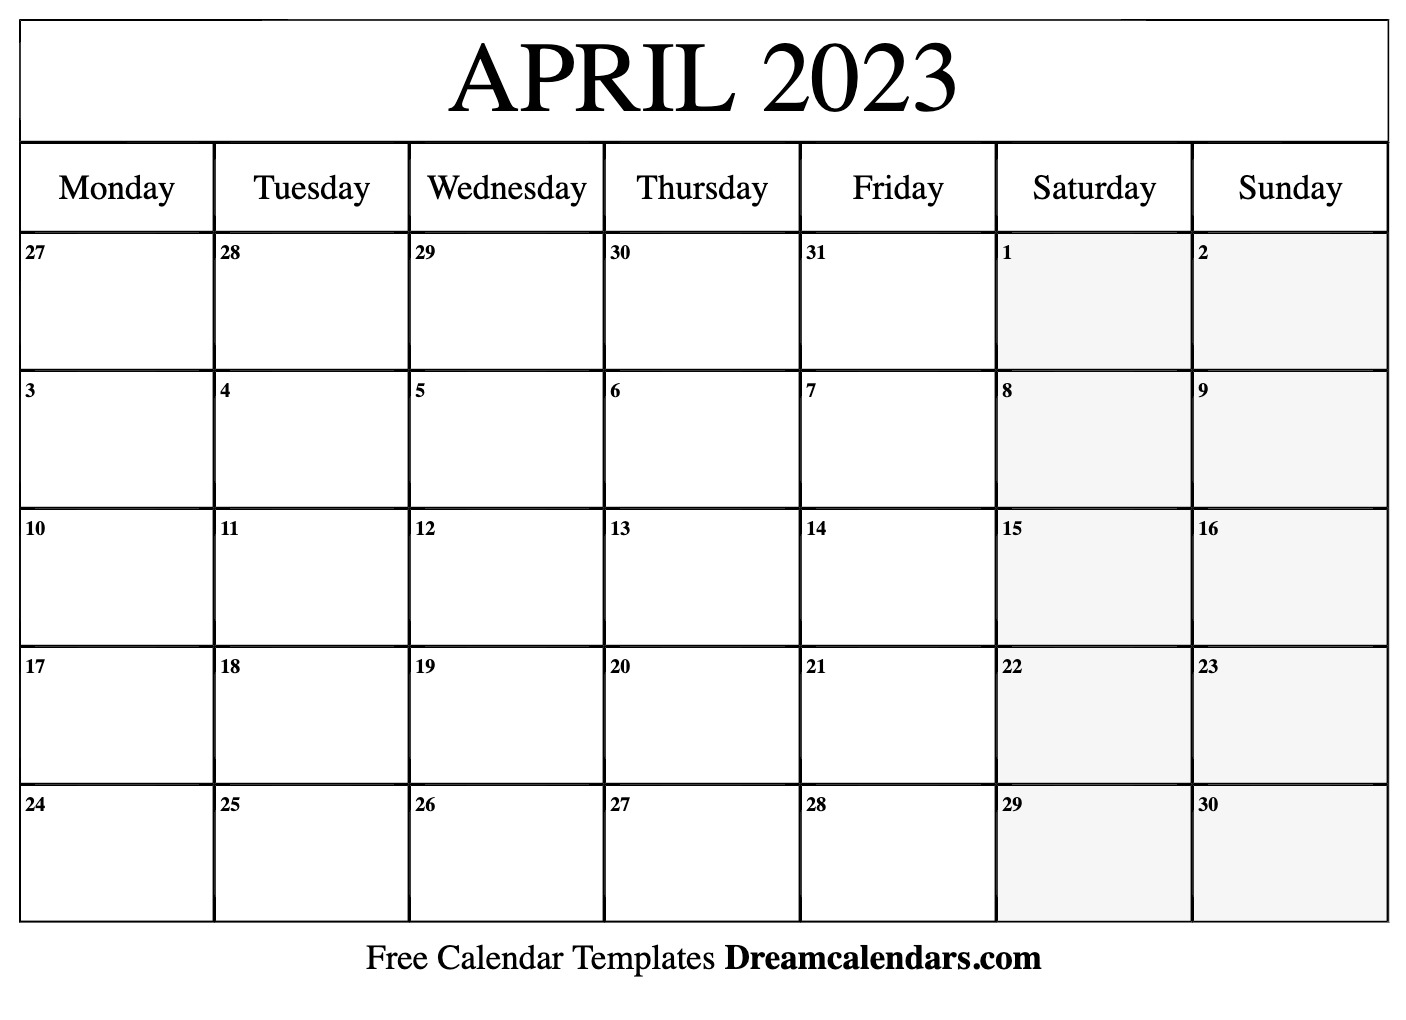 April 2023 Calendar Free Blank Printable Templates